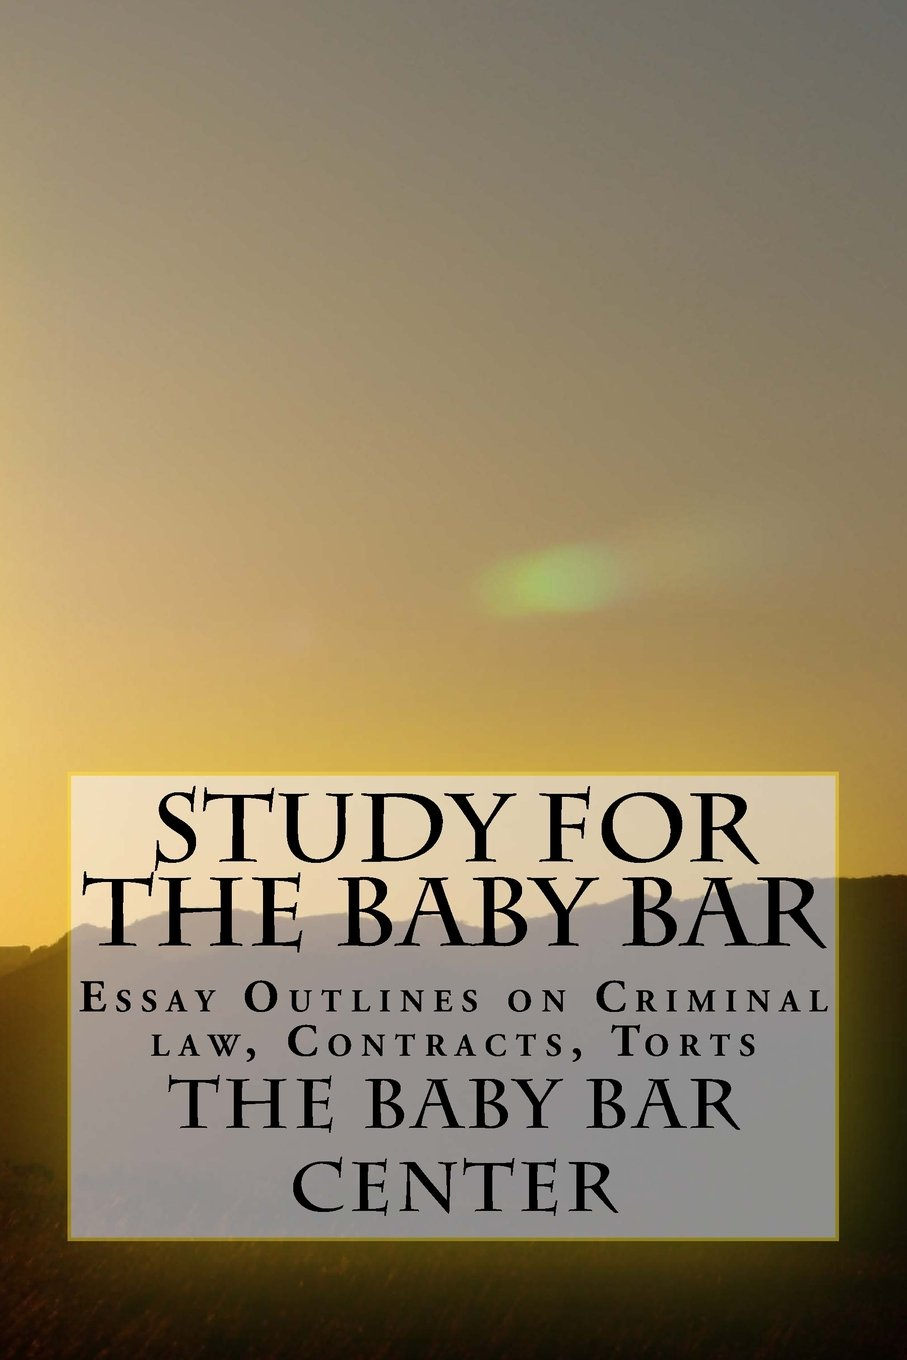 Download Study For The Baby Bar: Essay Outlines on Criminal law, Contracts, Torts pdf